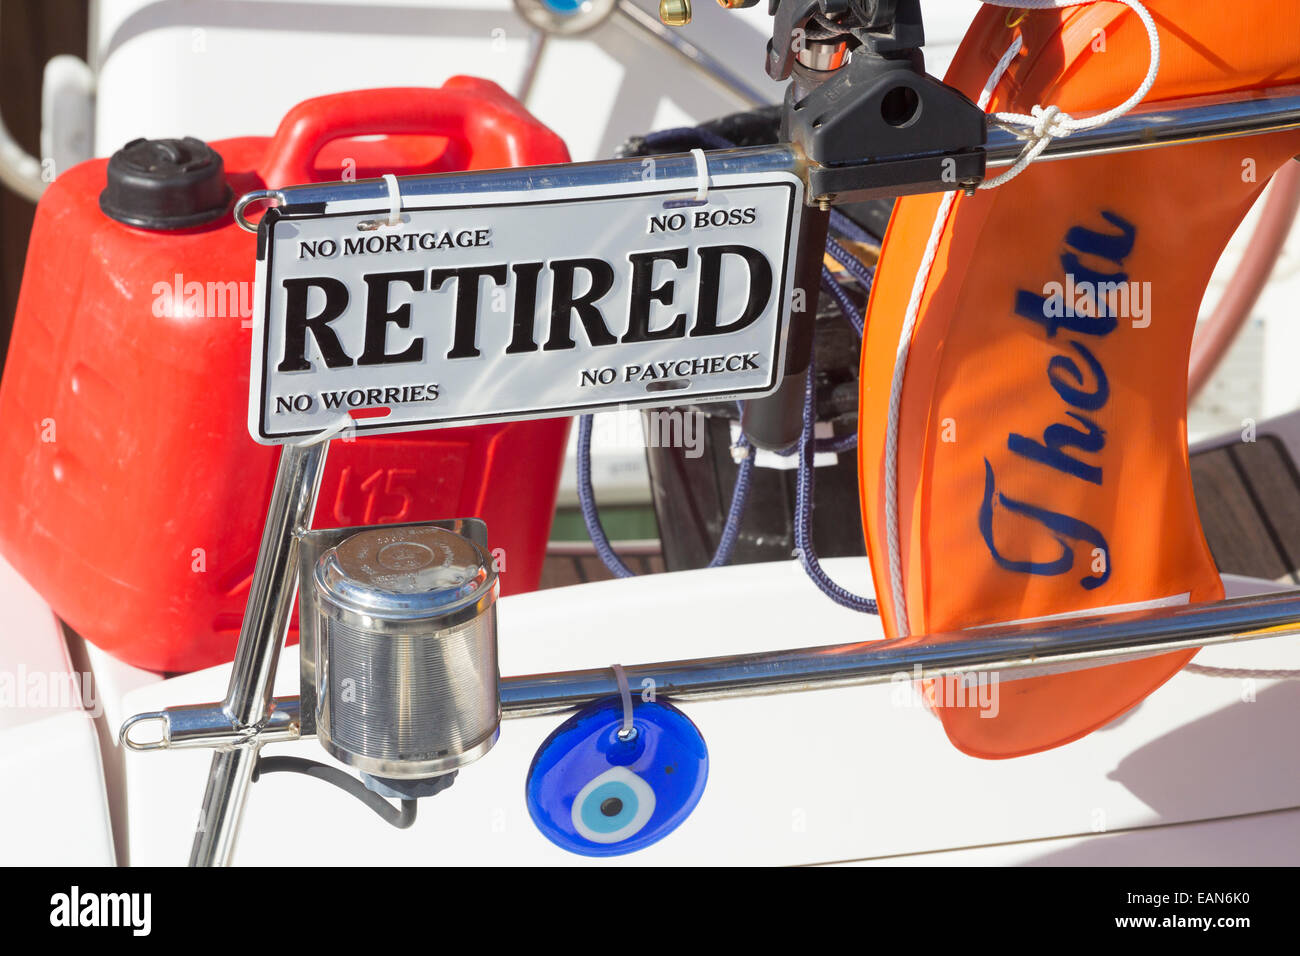 Retired sign on yacht. Sign says: No Mortgage, No Boss, No Worries and No Paycheck - Stock Image